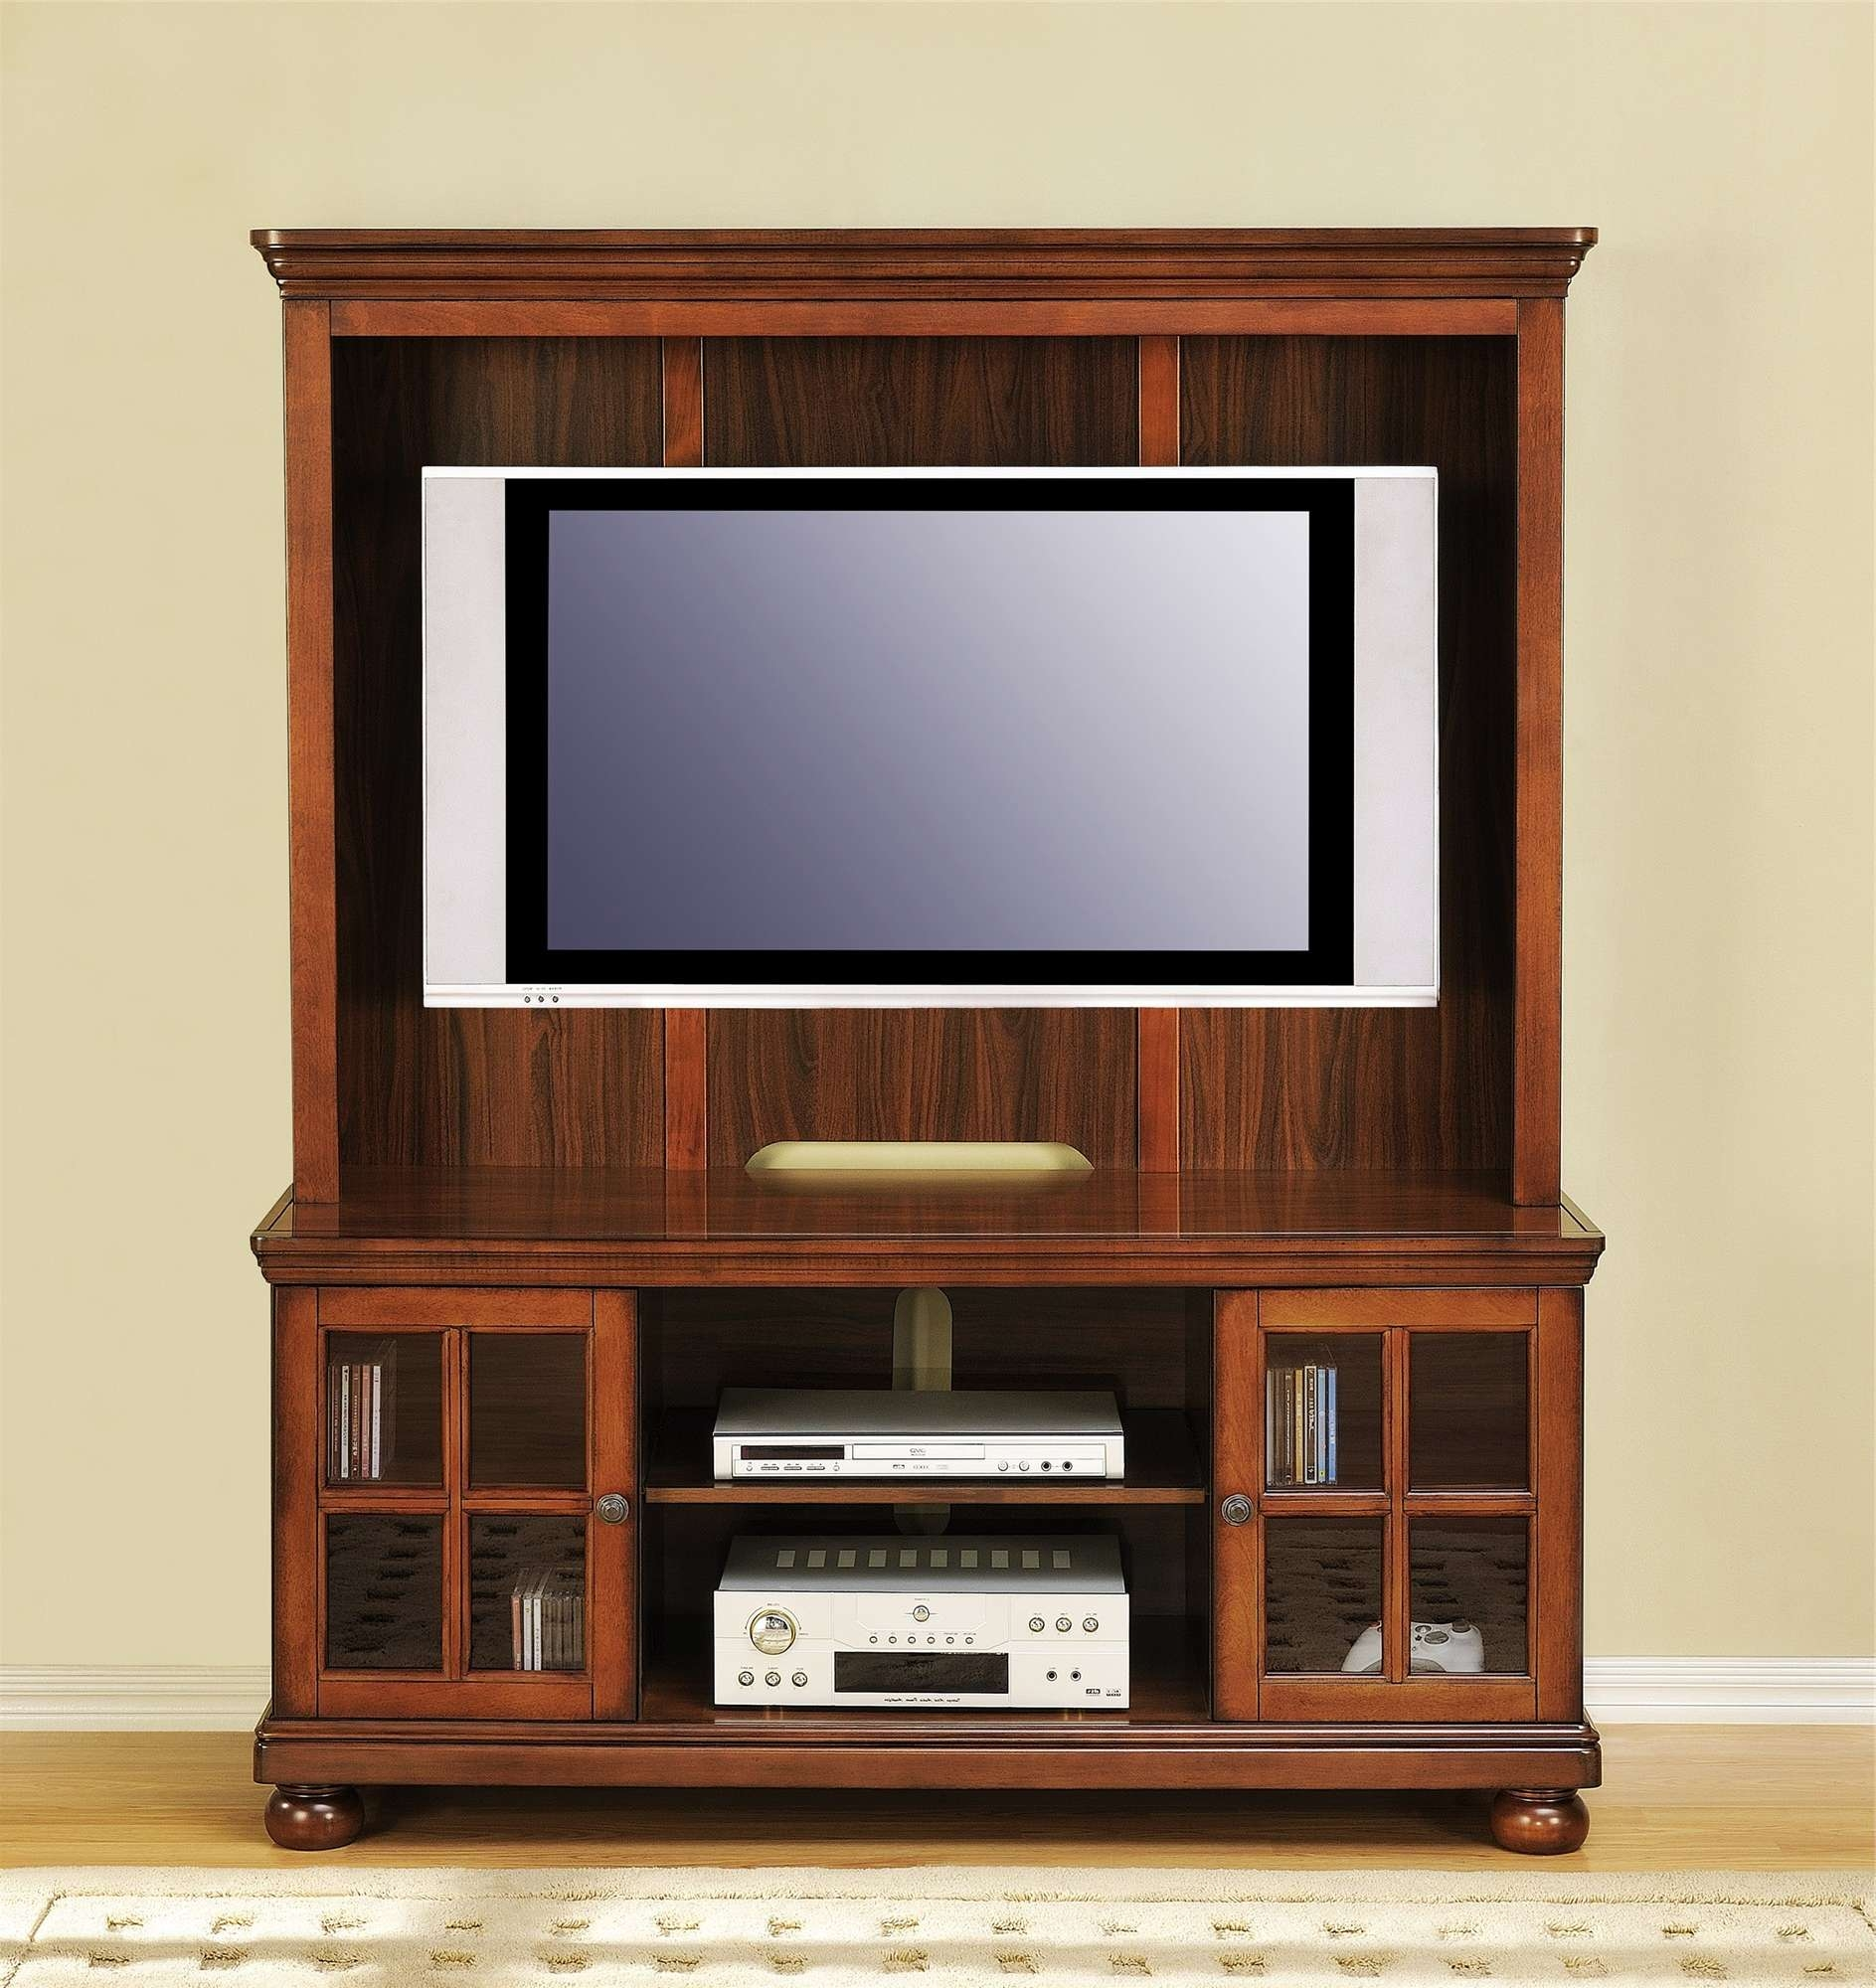 Image Gallery Of Wooden Tv Stands And Cabinets View 10 Of 15 Photos